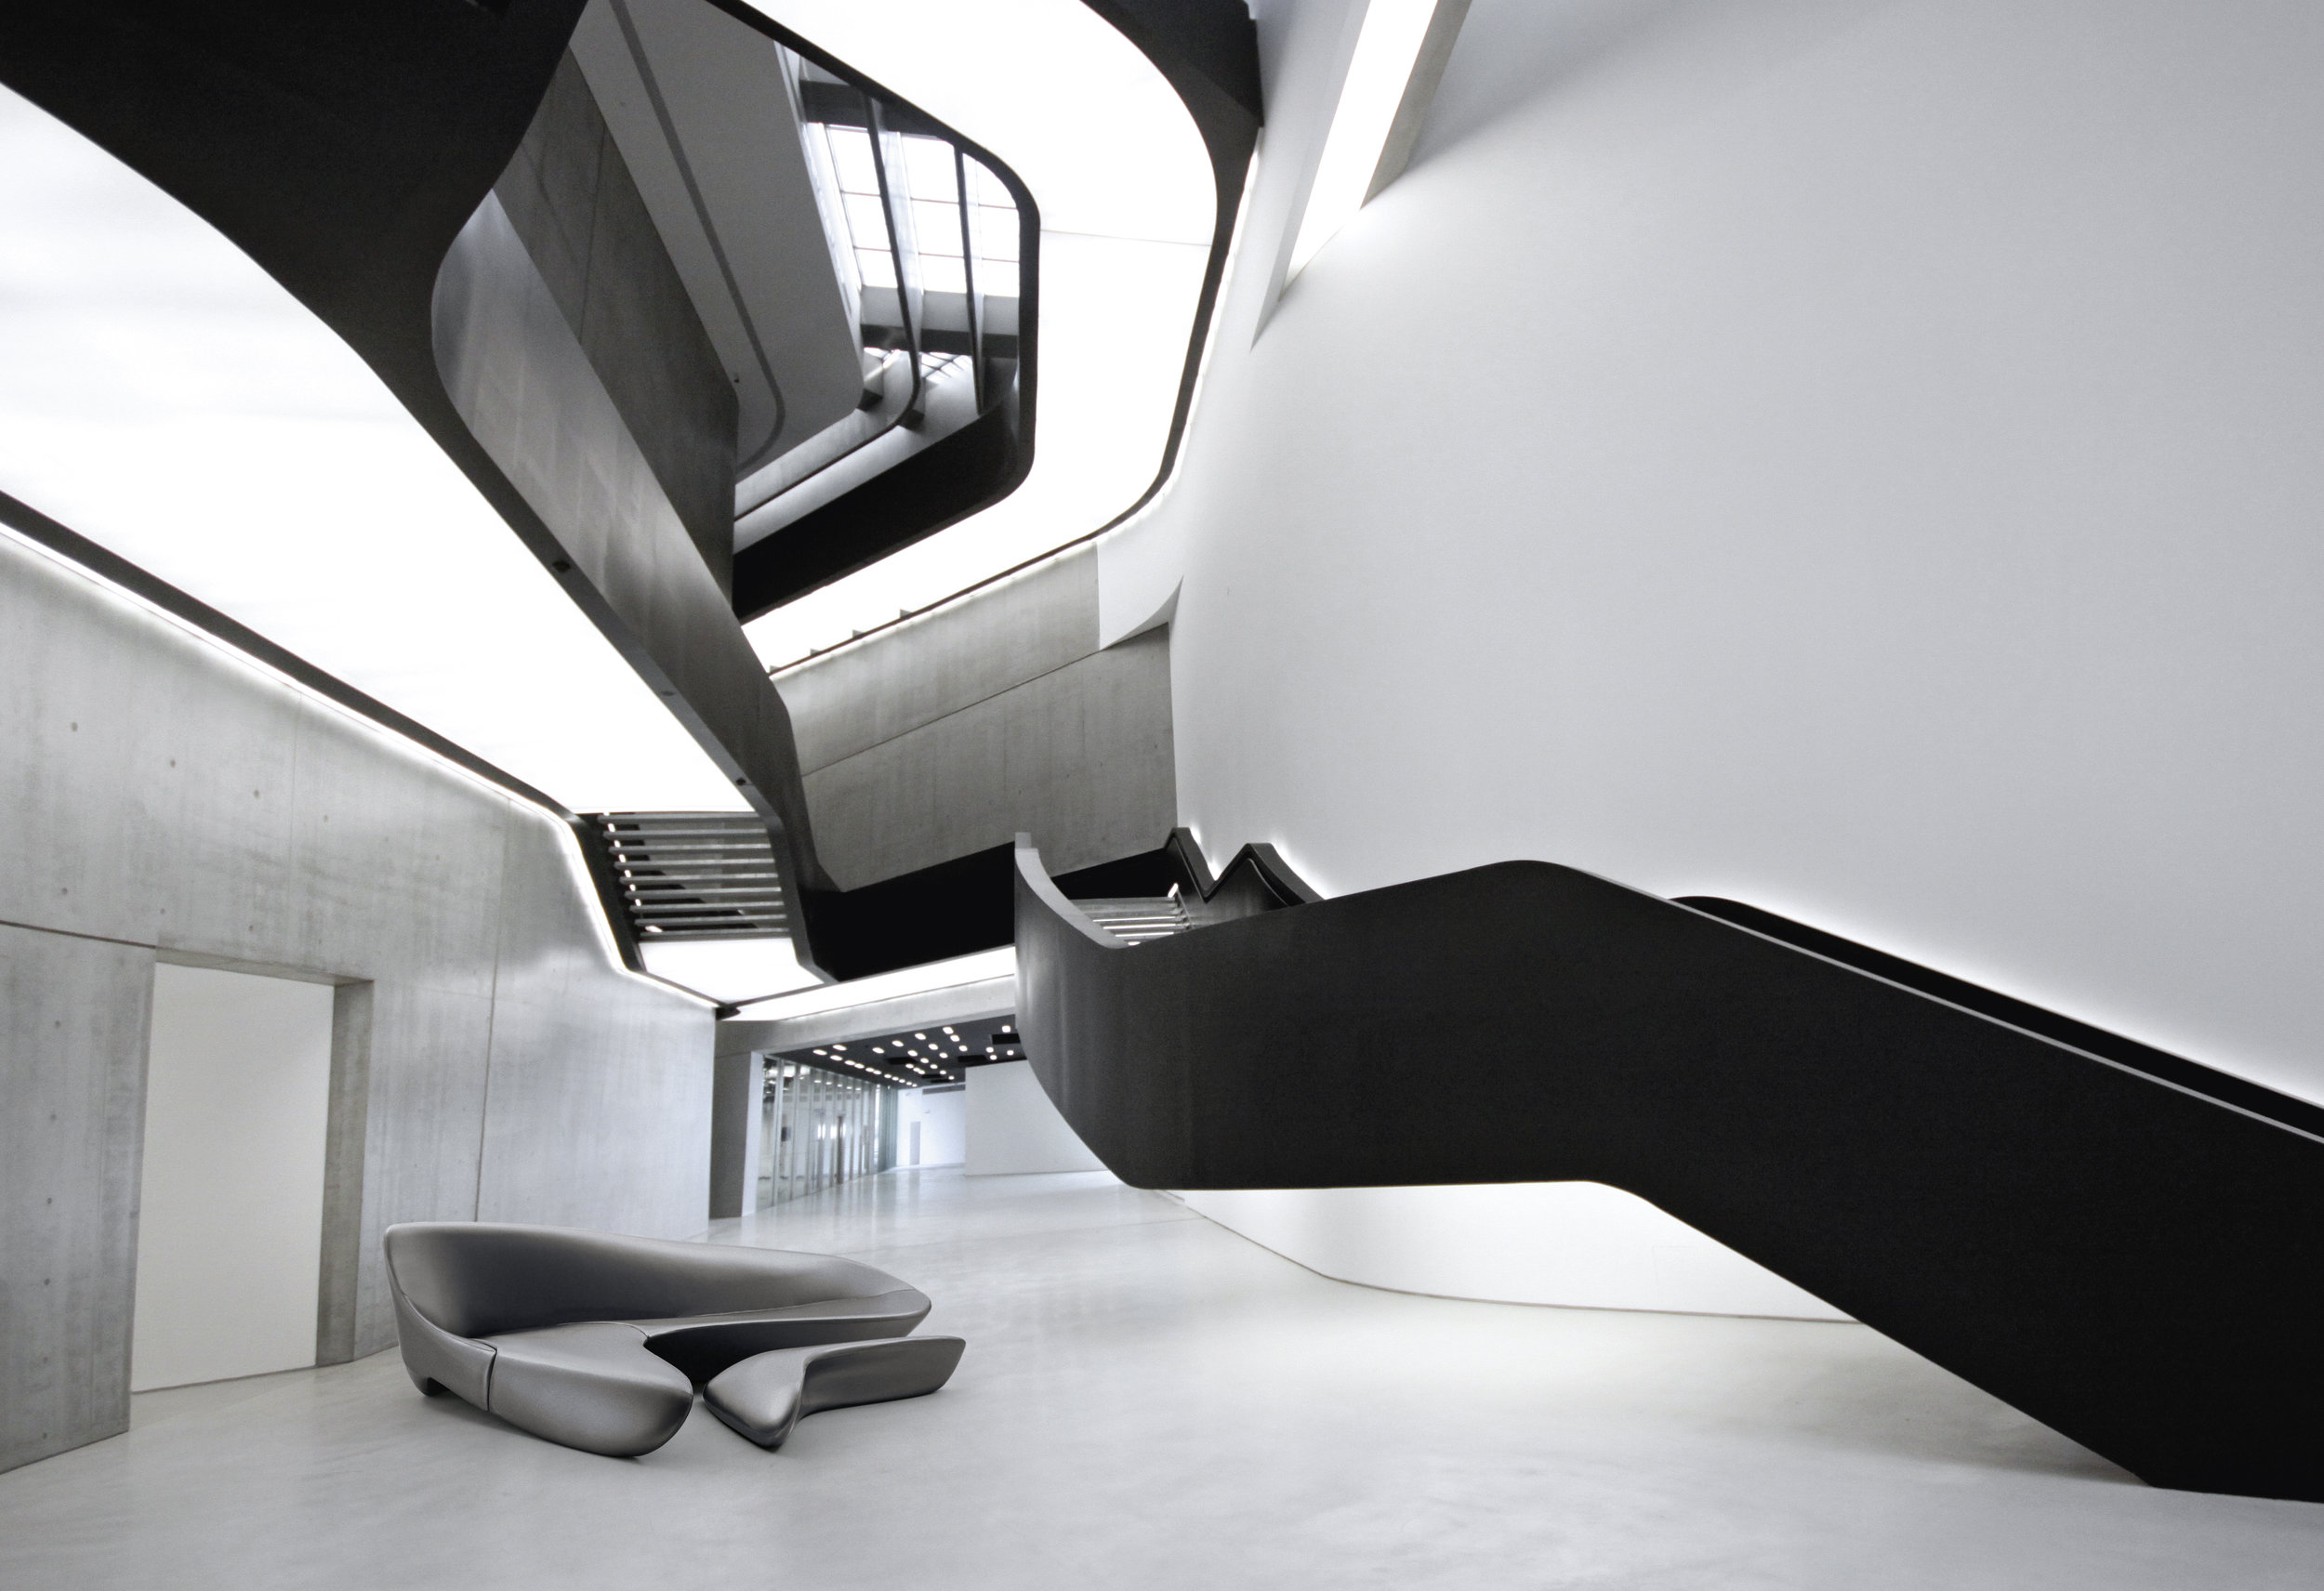 - With its unmistakable distinctive profile, like the buildings designed by her, Zaha Hadid creates a highly dynamic corner sofa.